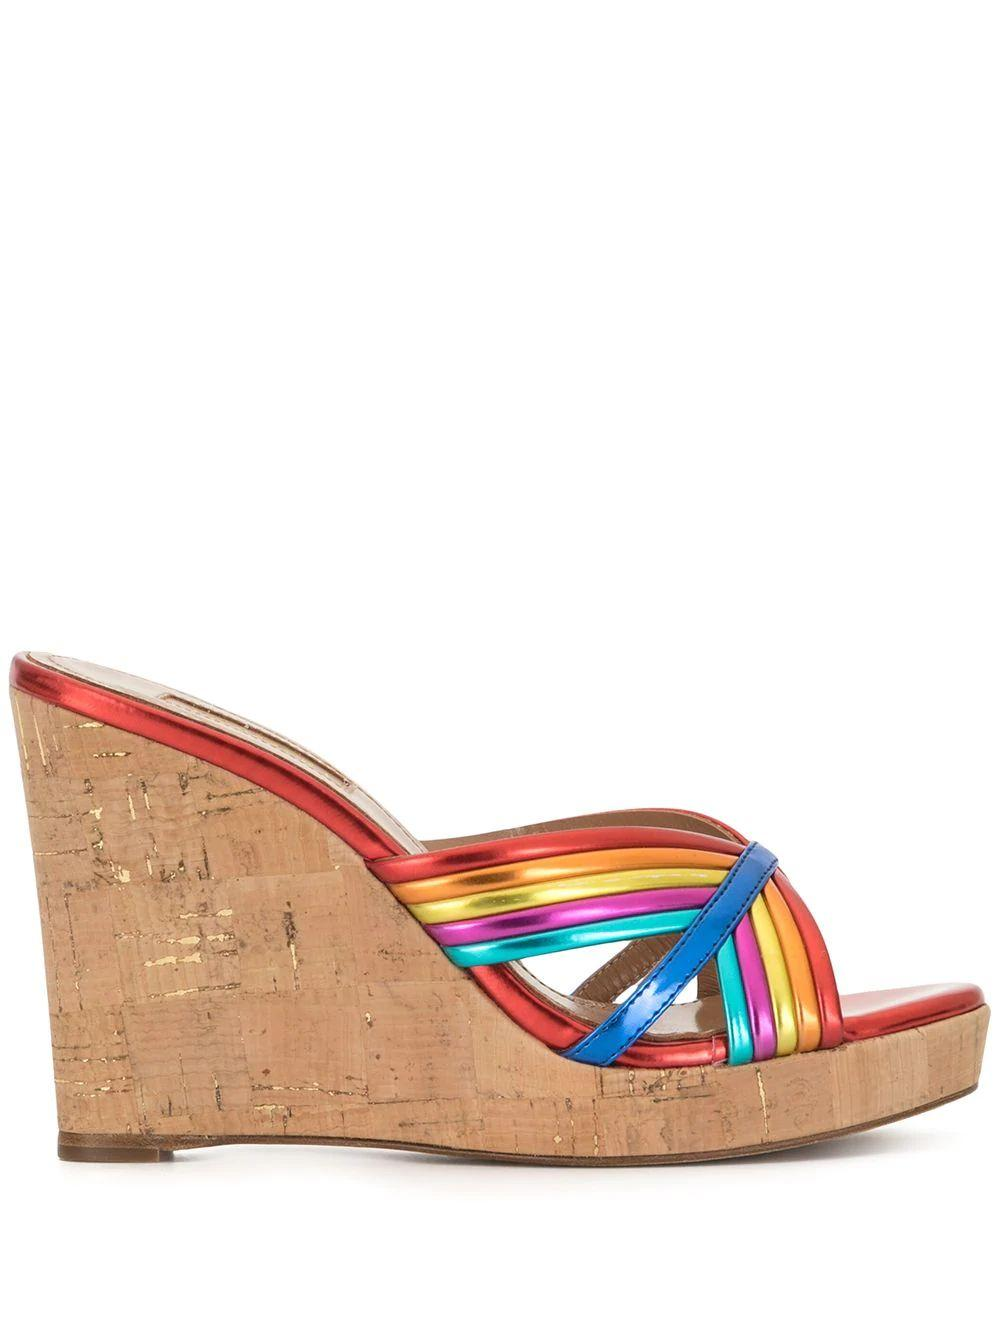 Sundance 105mm Wedge Sandal